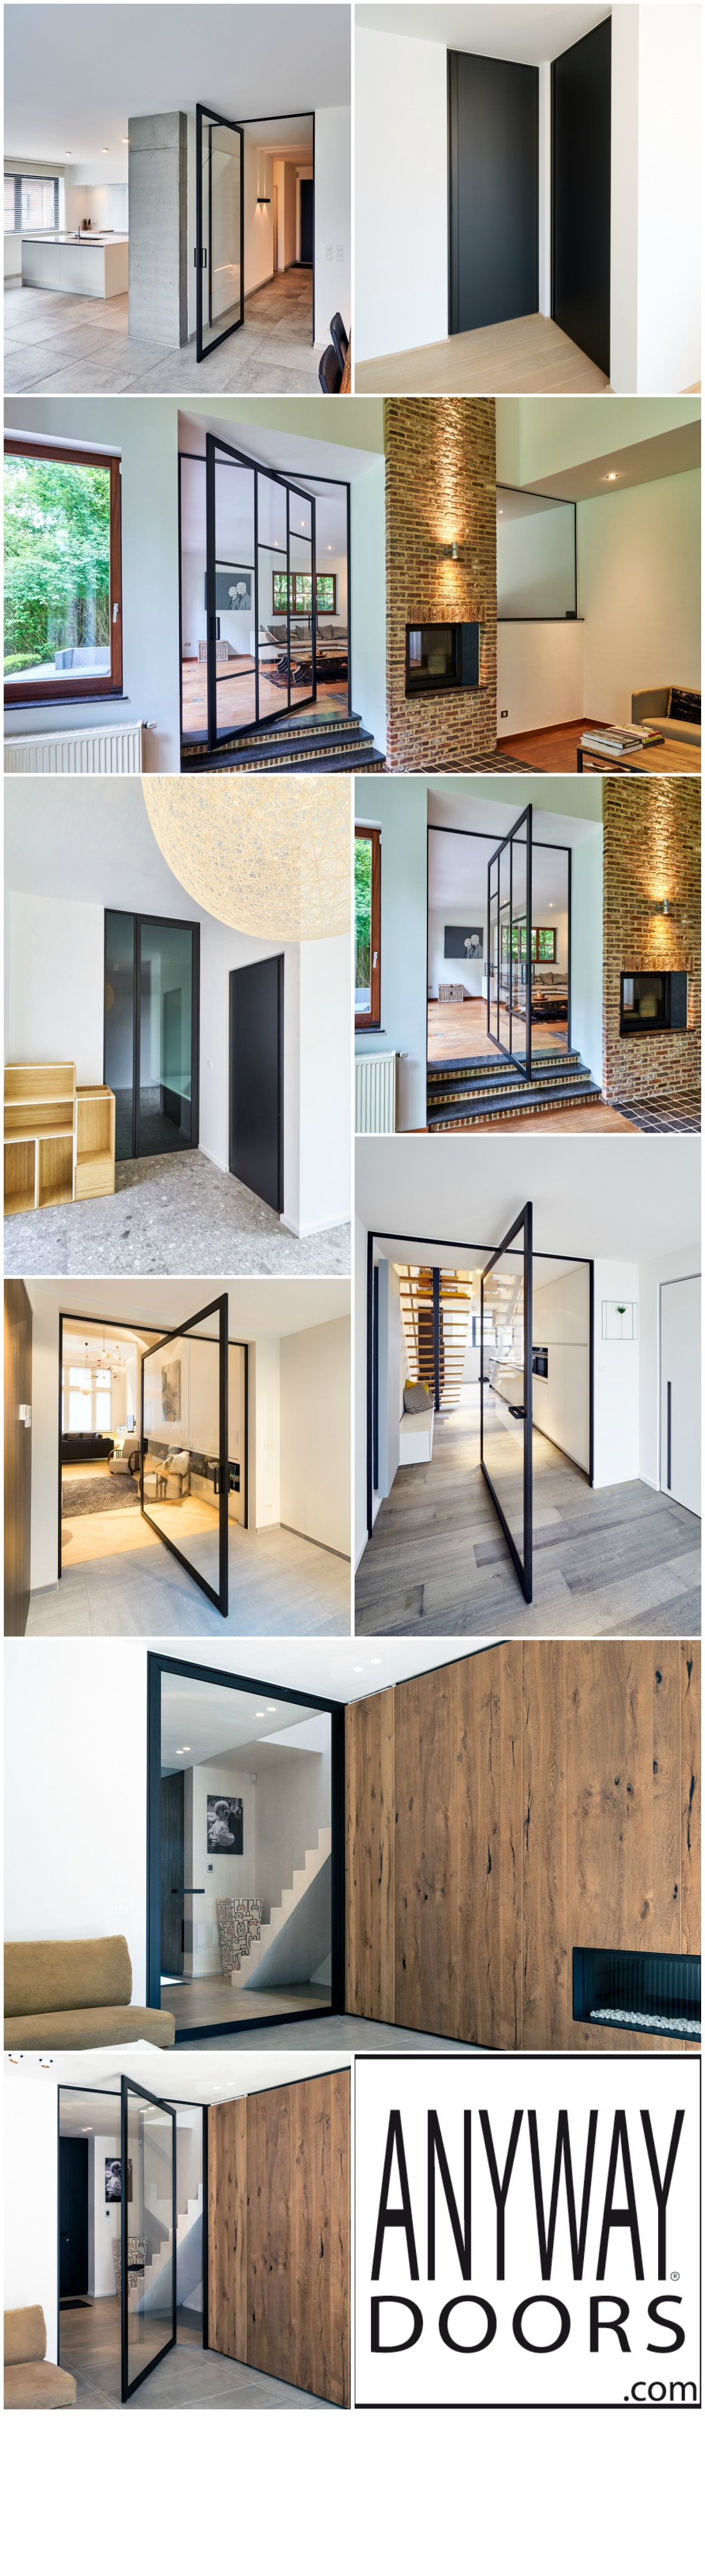 Searching for modern interior doors? Anyway Doors creates timeless ...